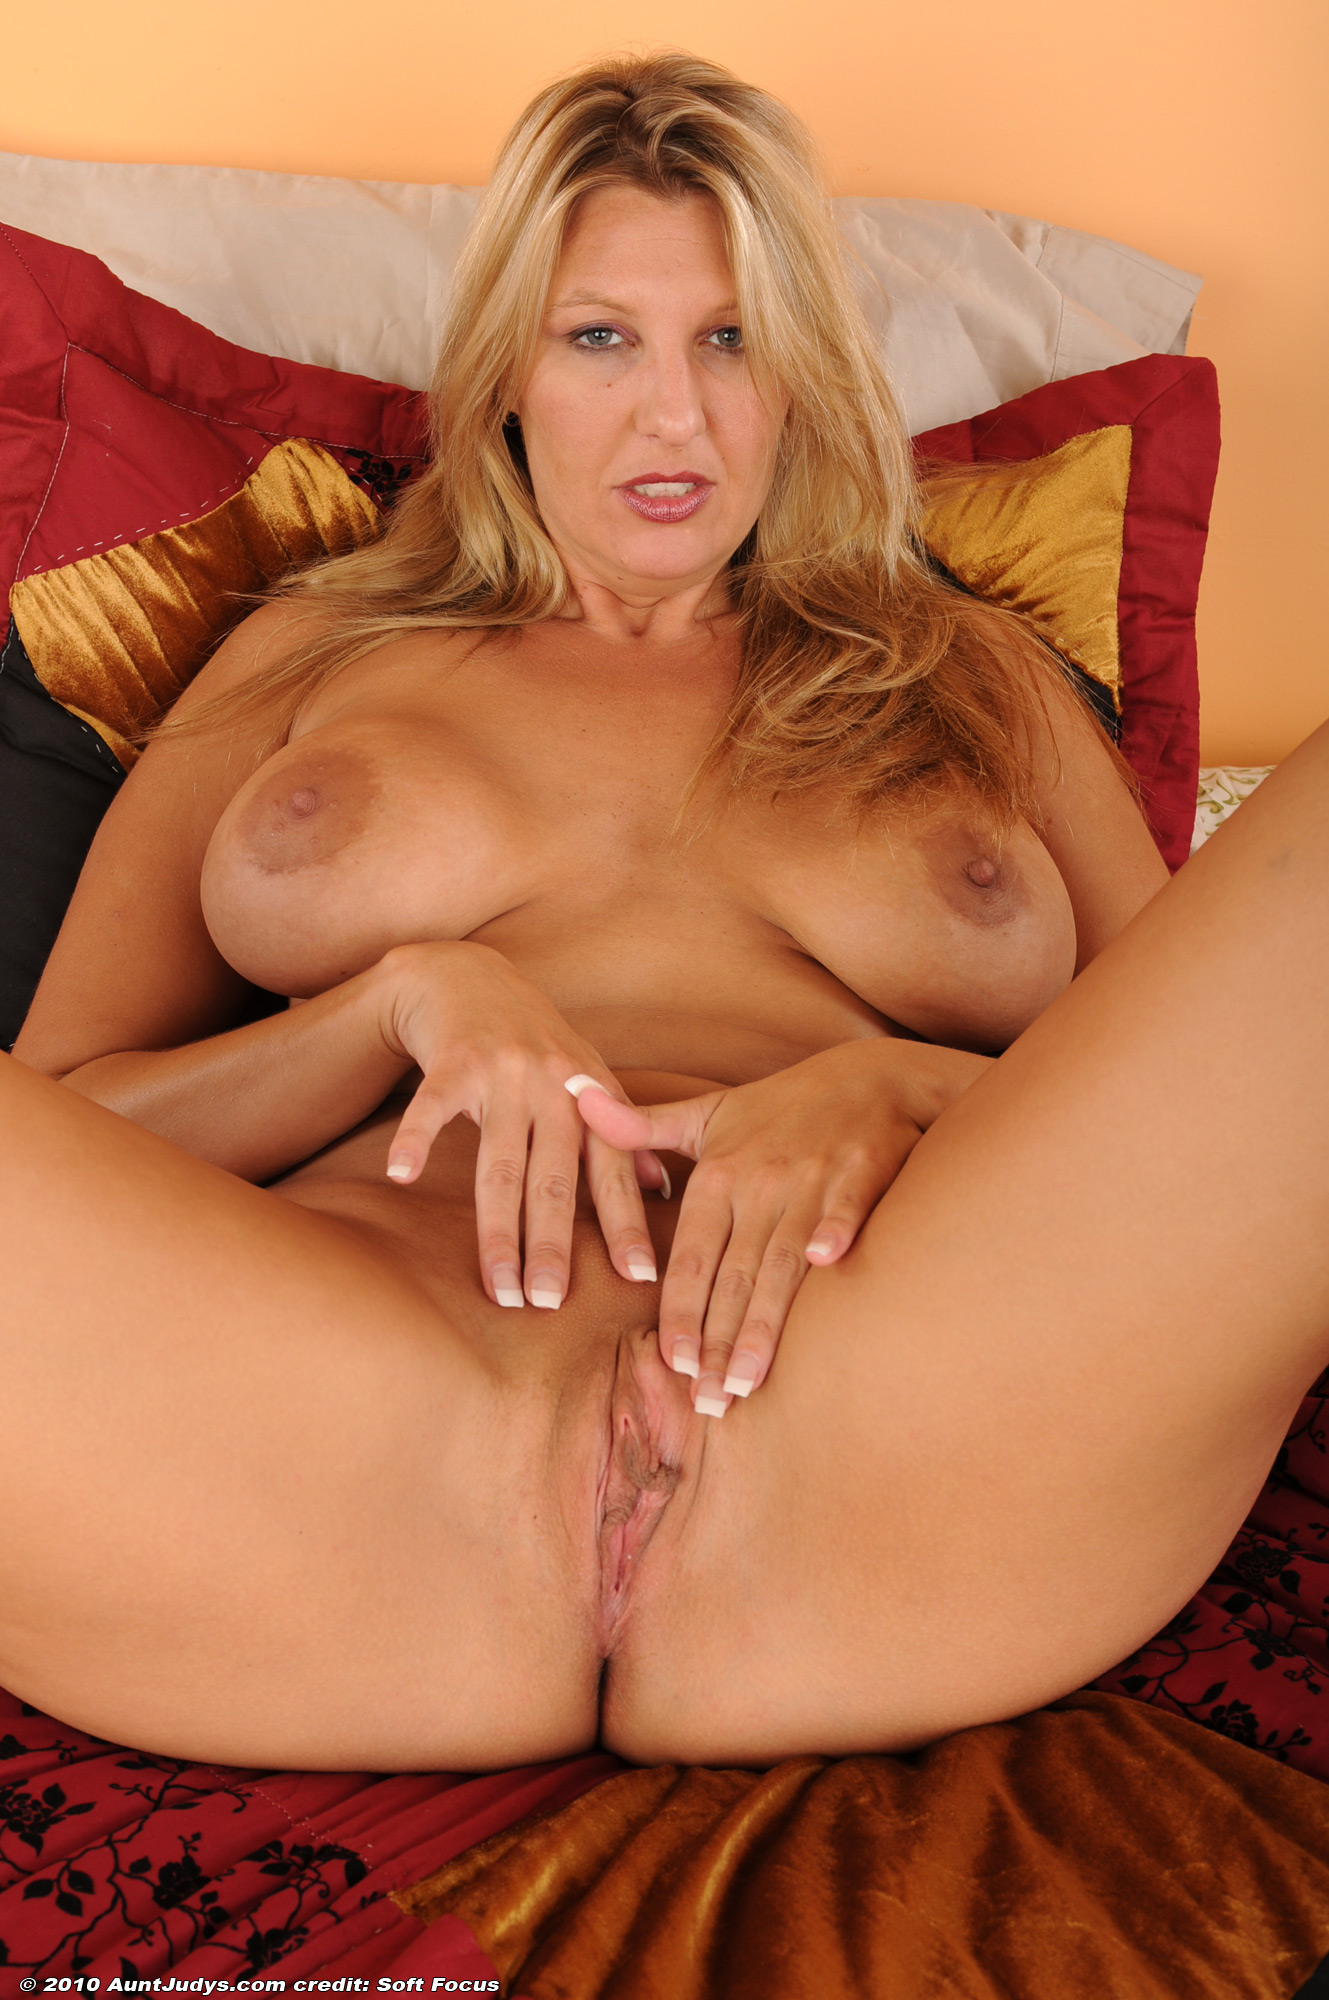 Hot nude spread cougar — img 4